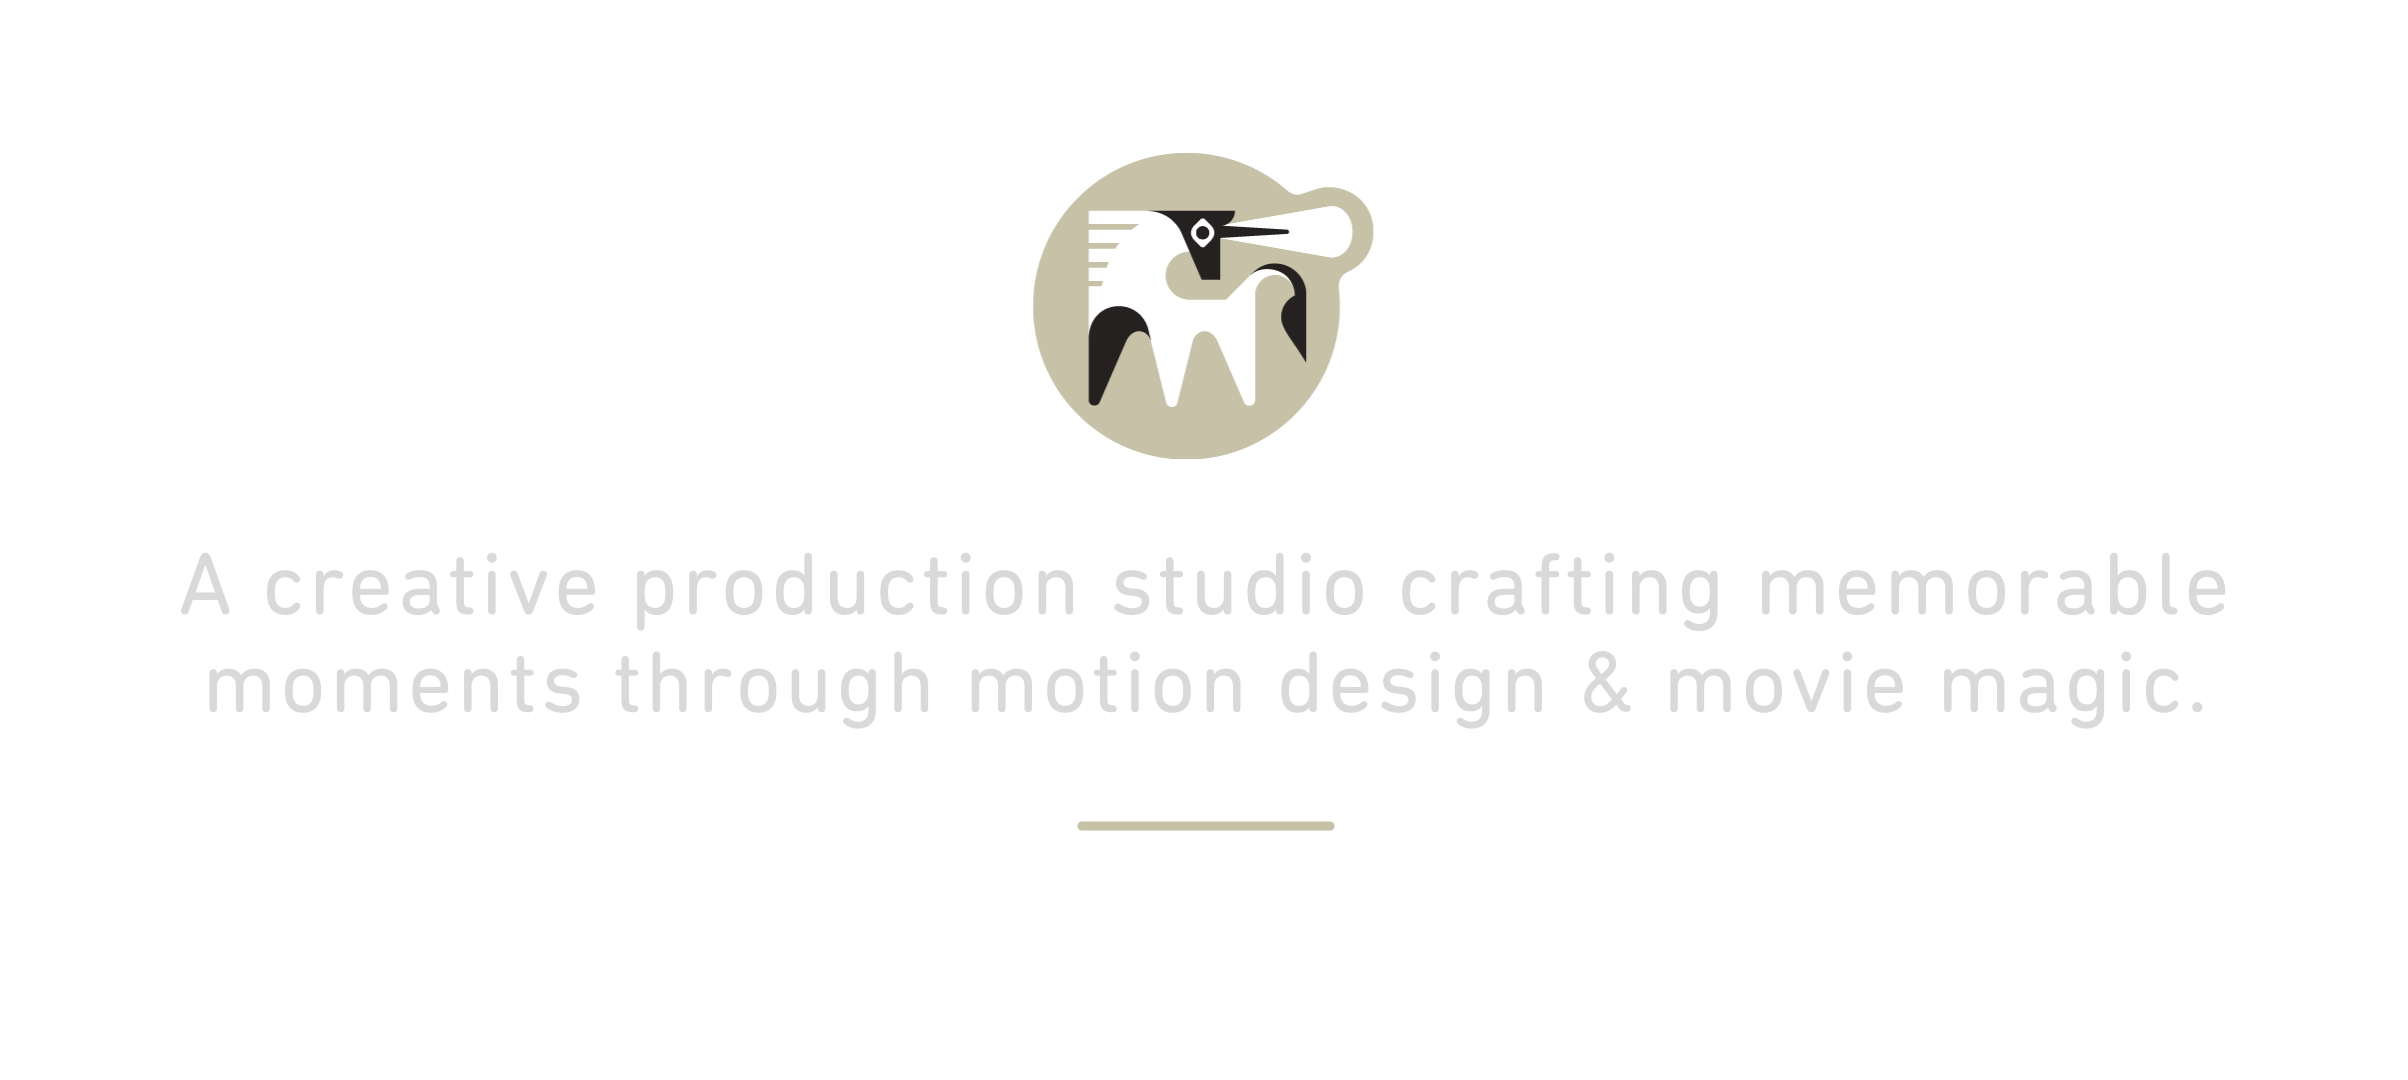 A creative production studio crafting moments through motion design and movie magic.png